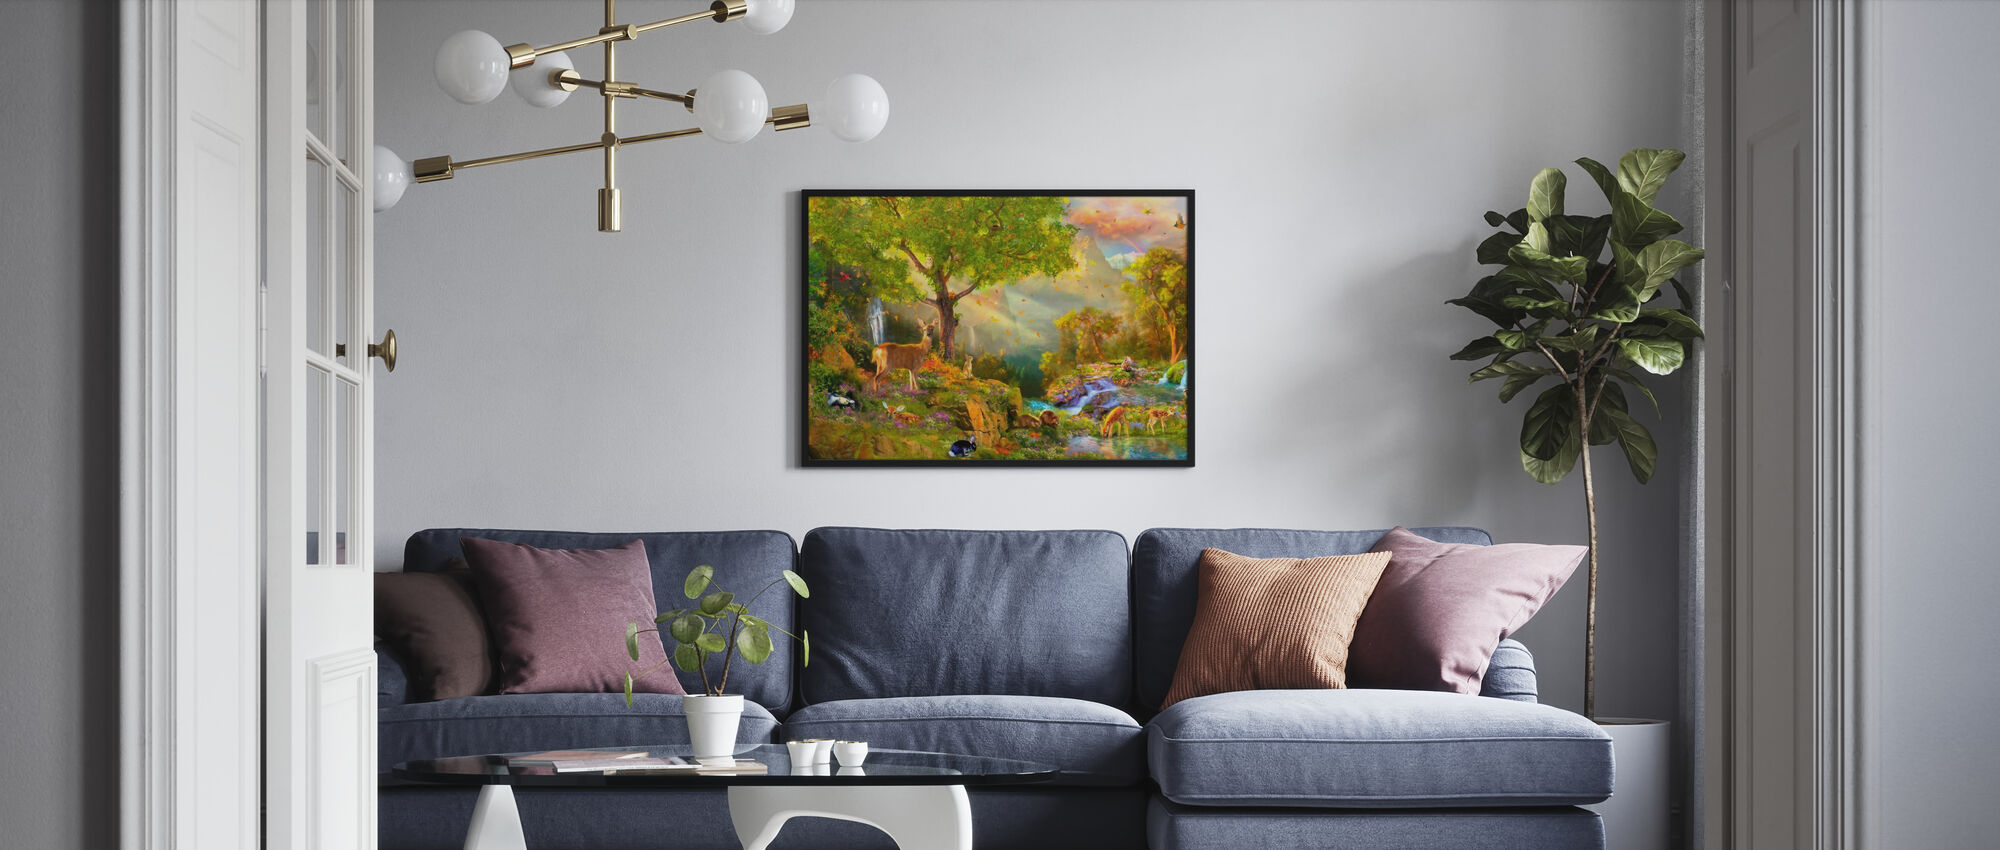 Fawn Mountain - Poster - Living Room